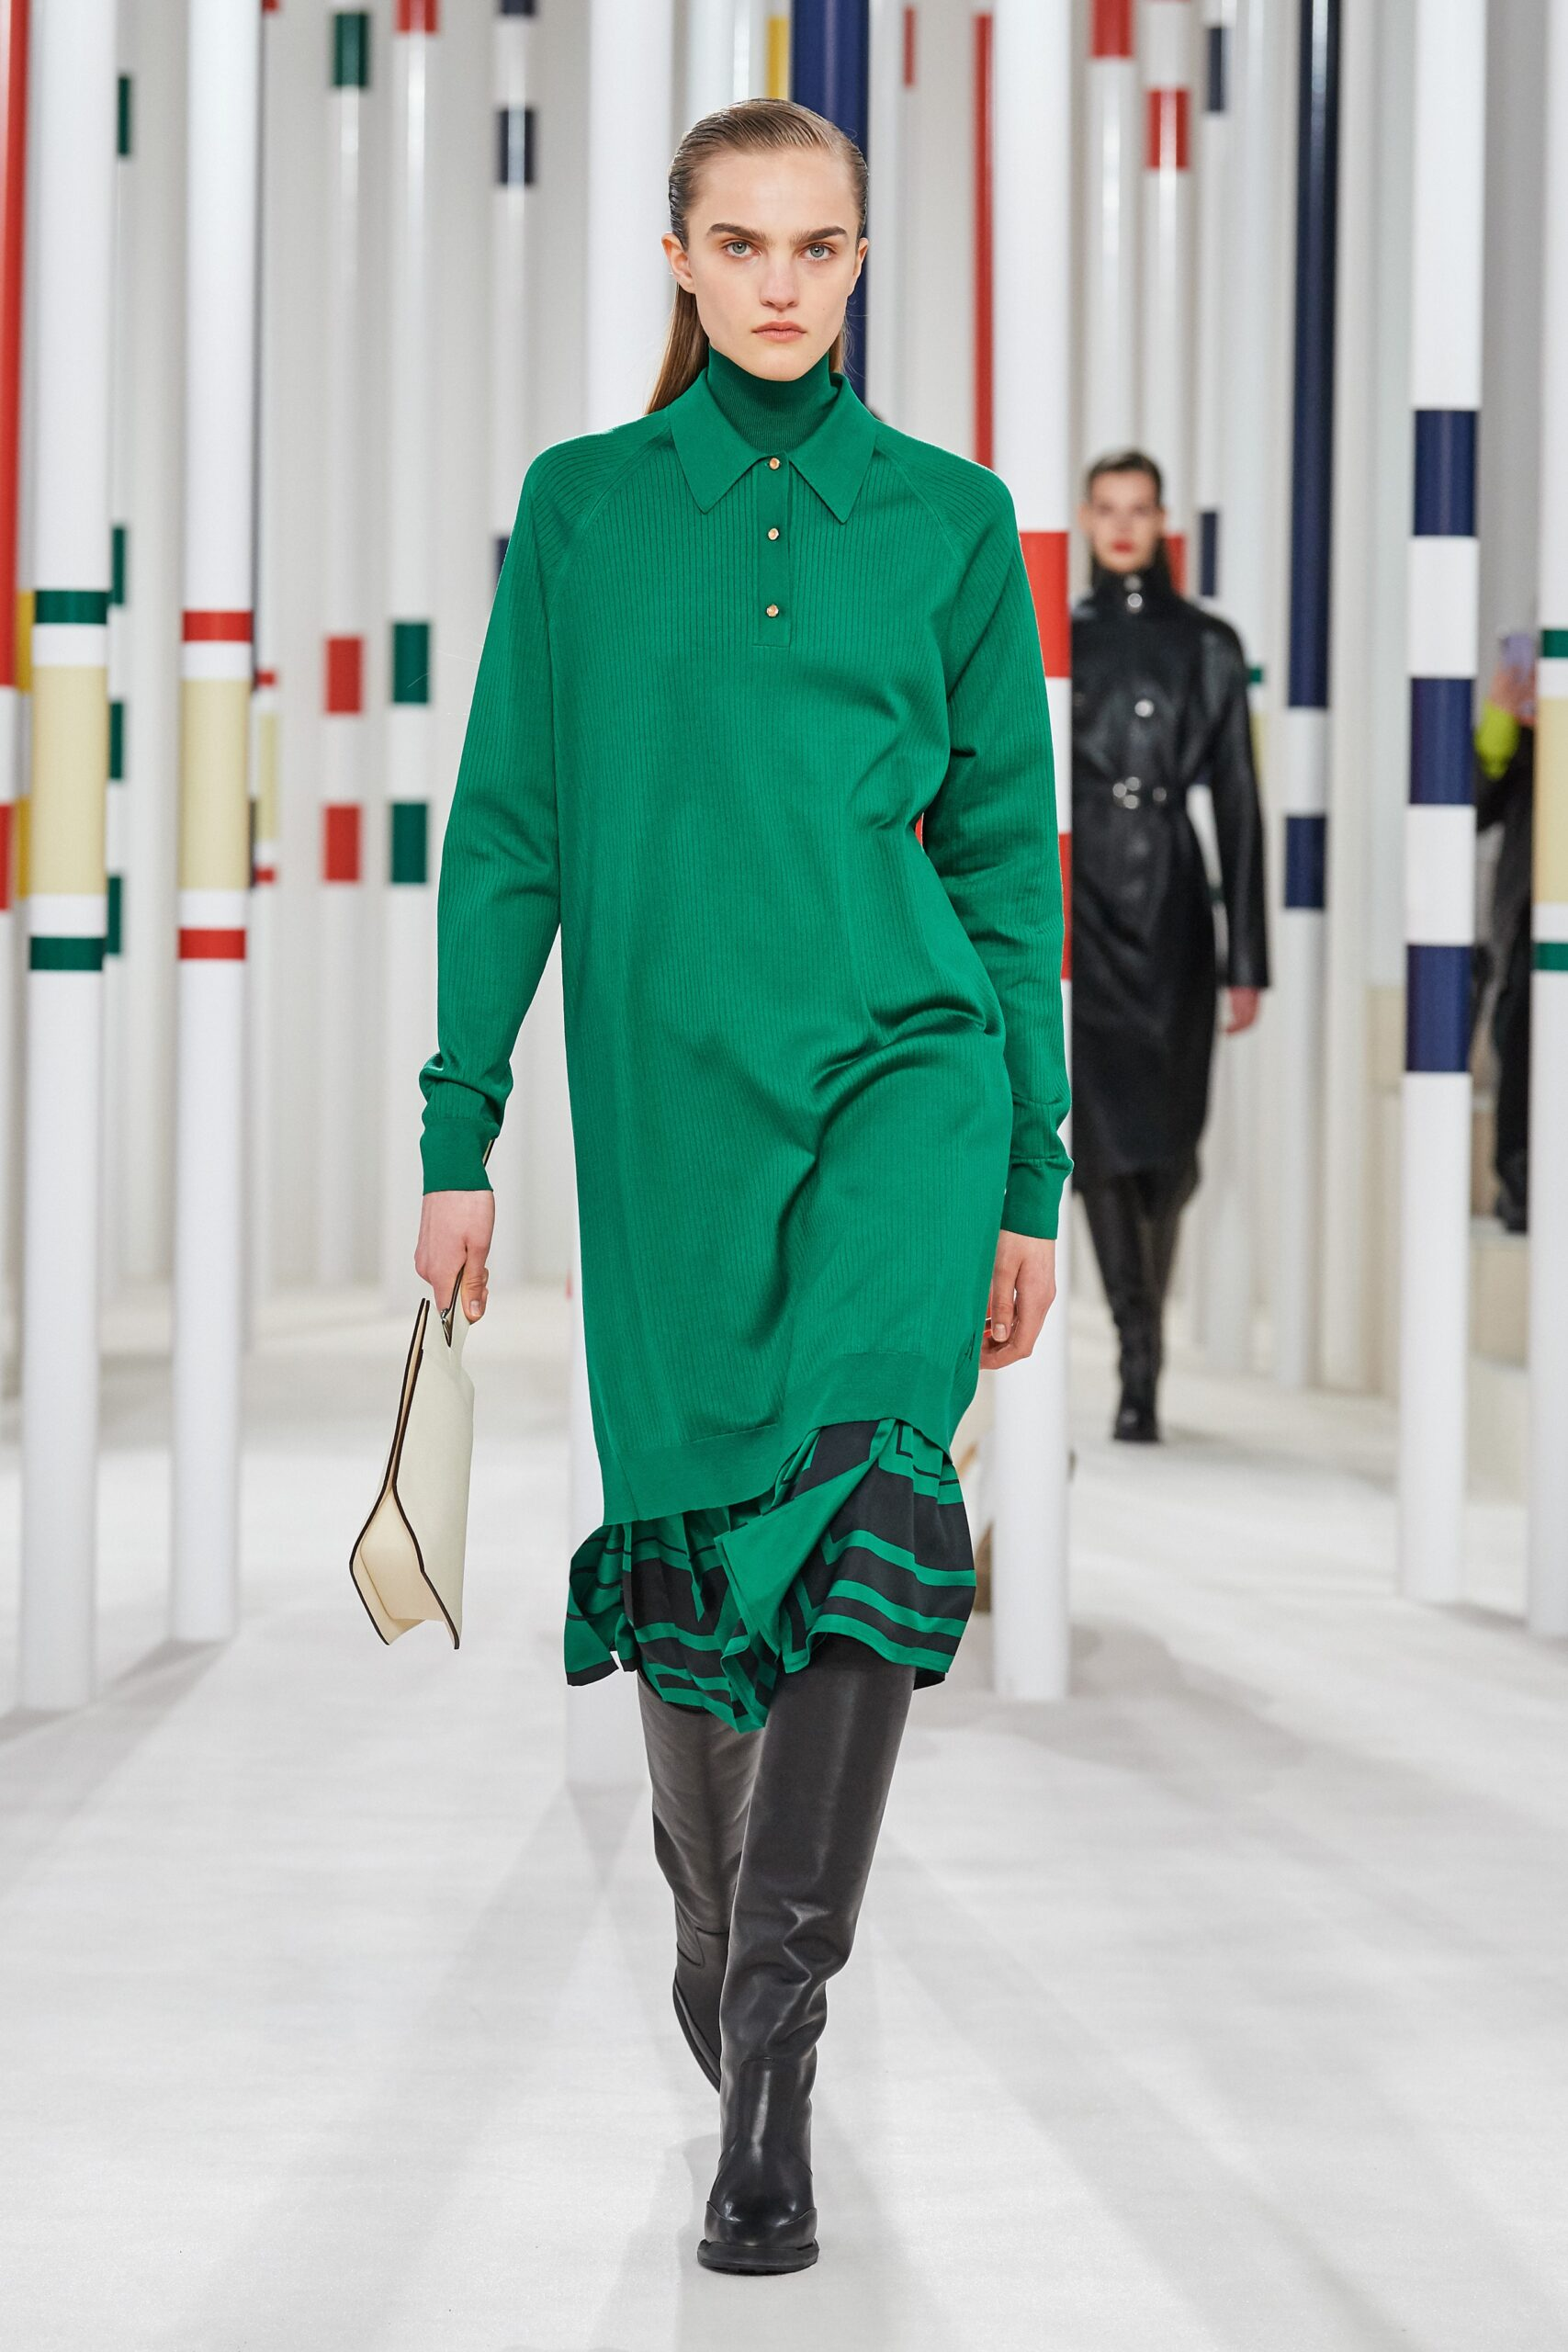 Hermes Fall 2020 ready-to-wear